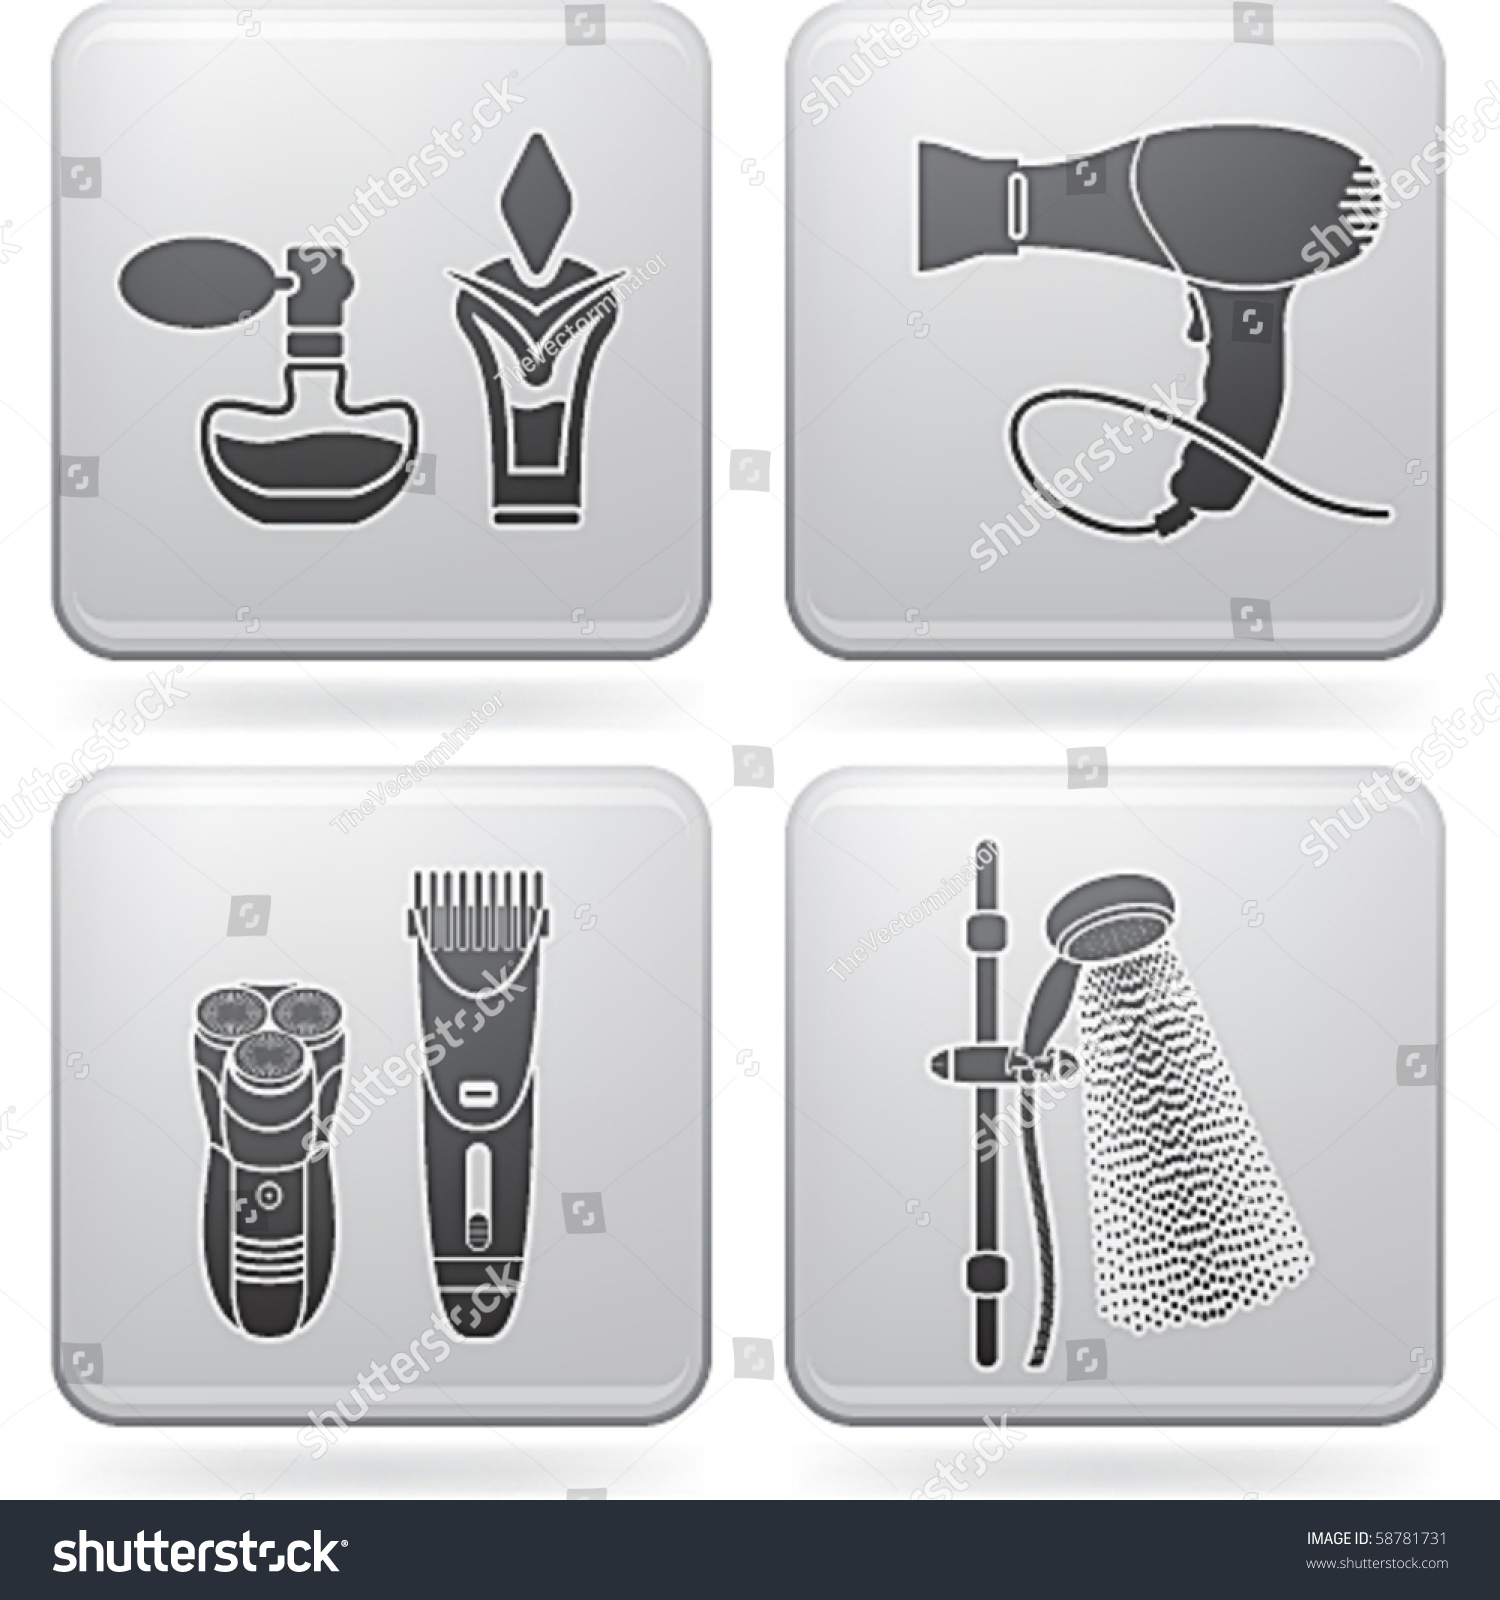 Bathroom utensils stock vector illustration 58781731 for Bathroom utensils